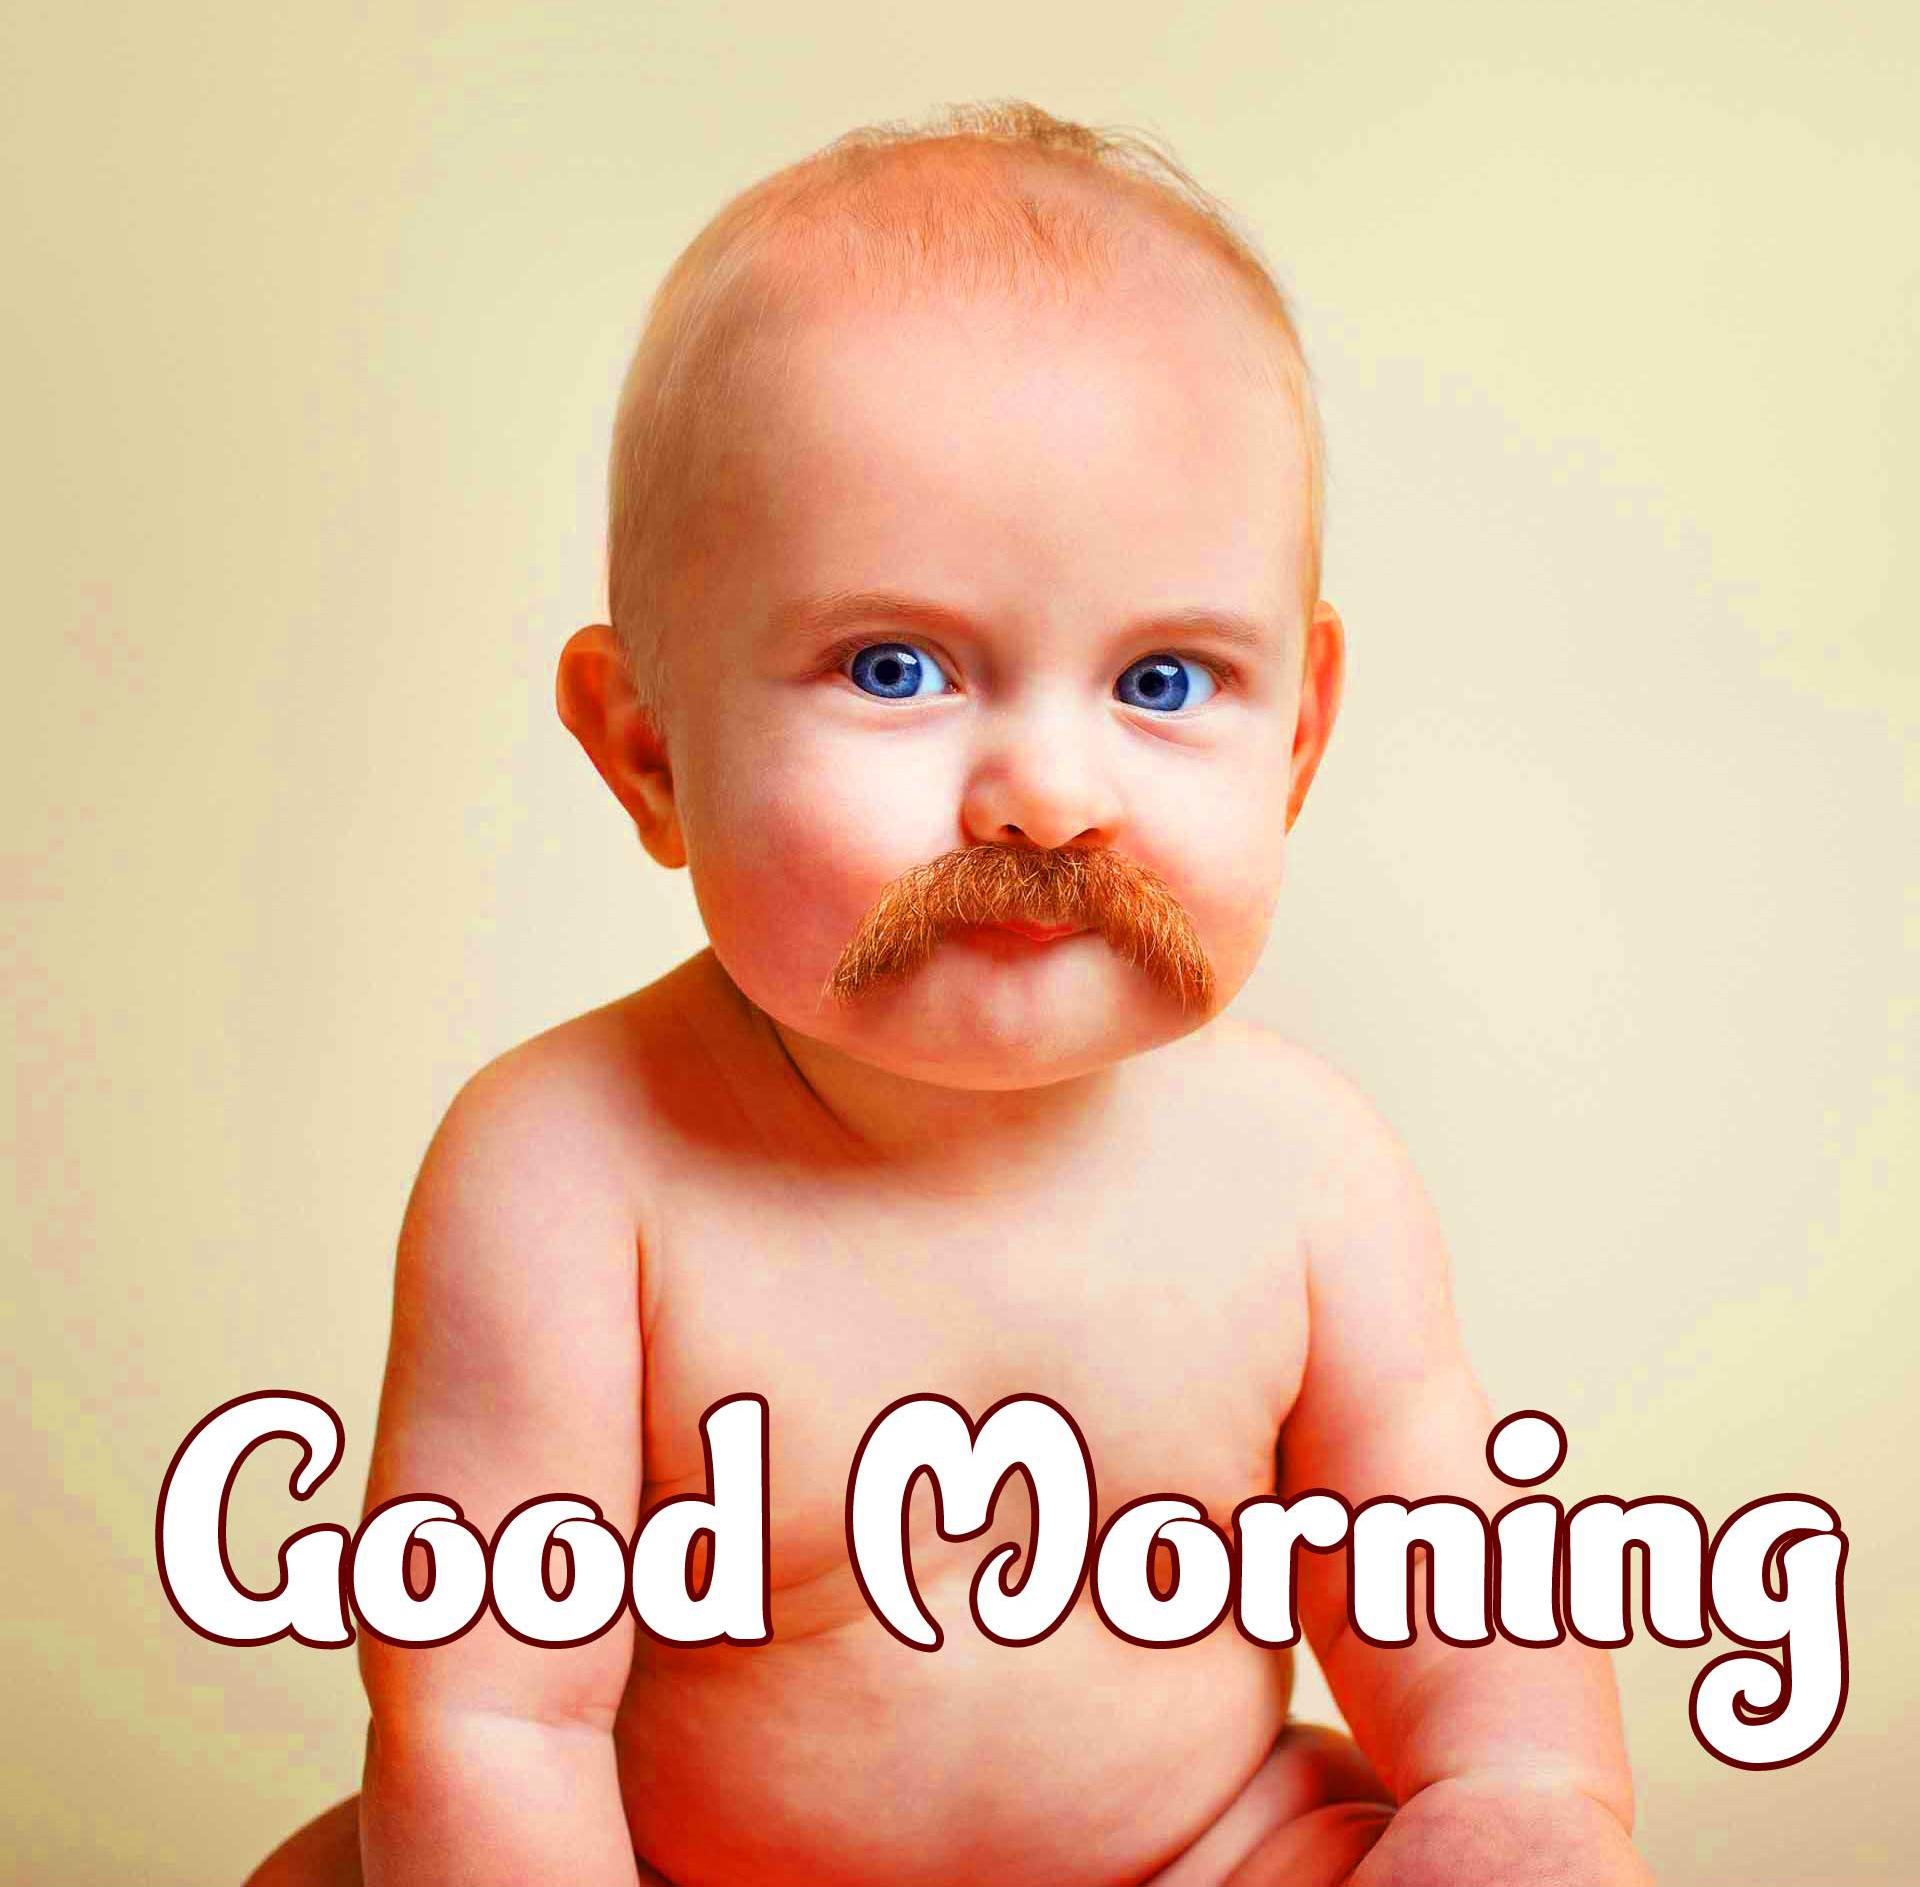 Good Morning Small Baby Images Photo free Download